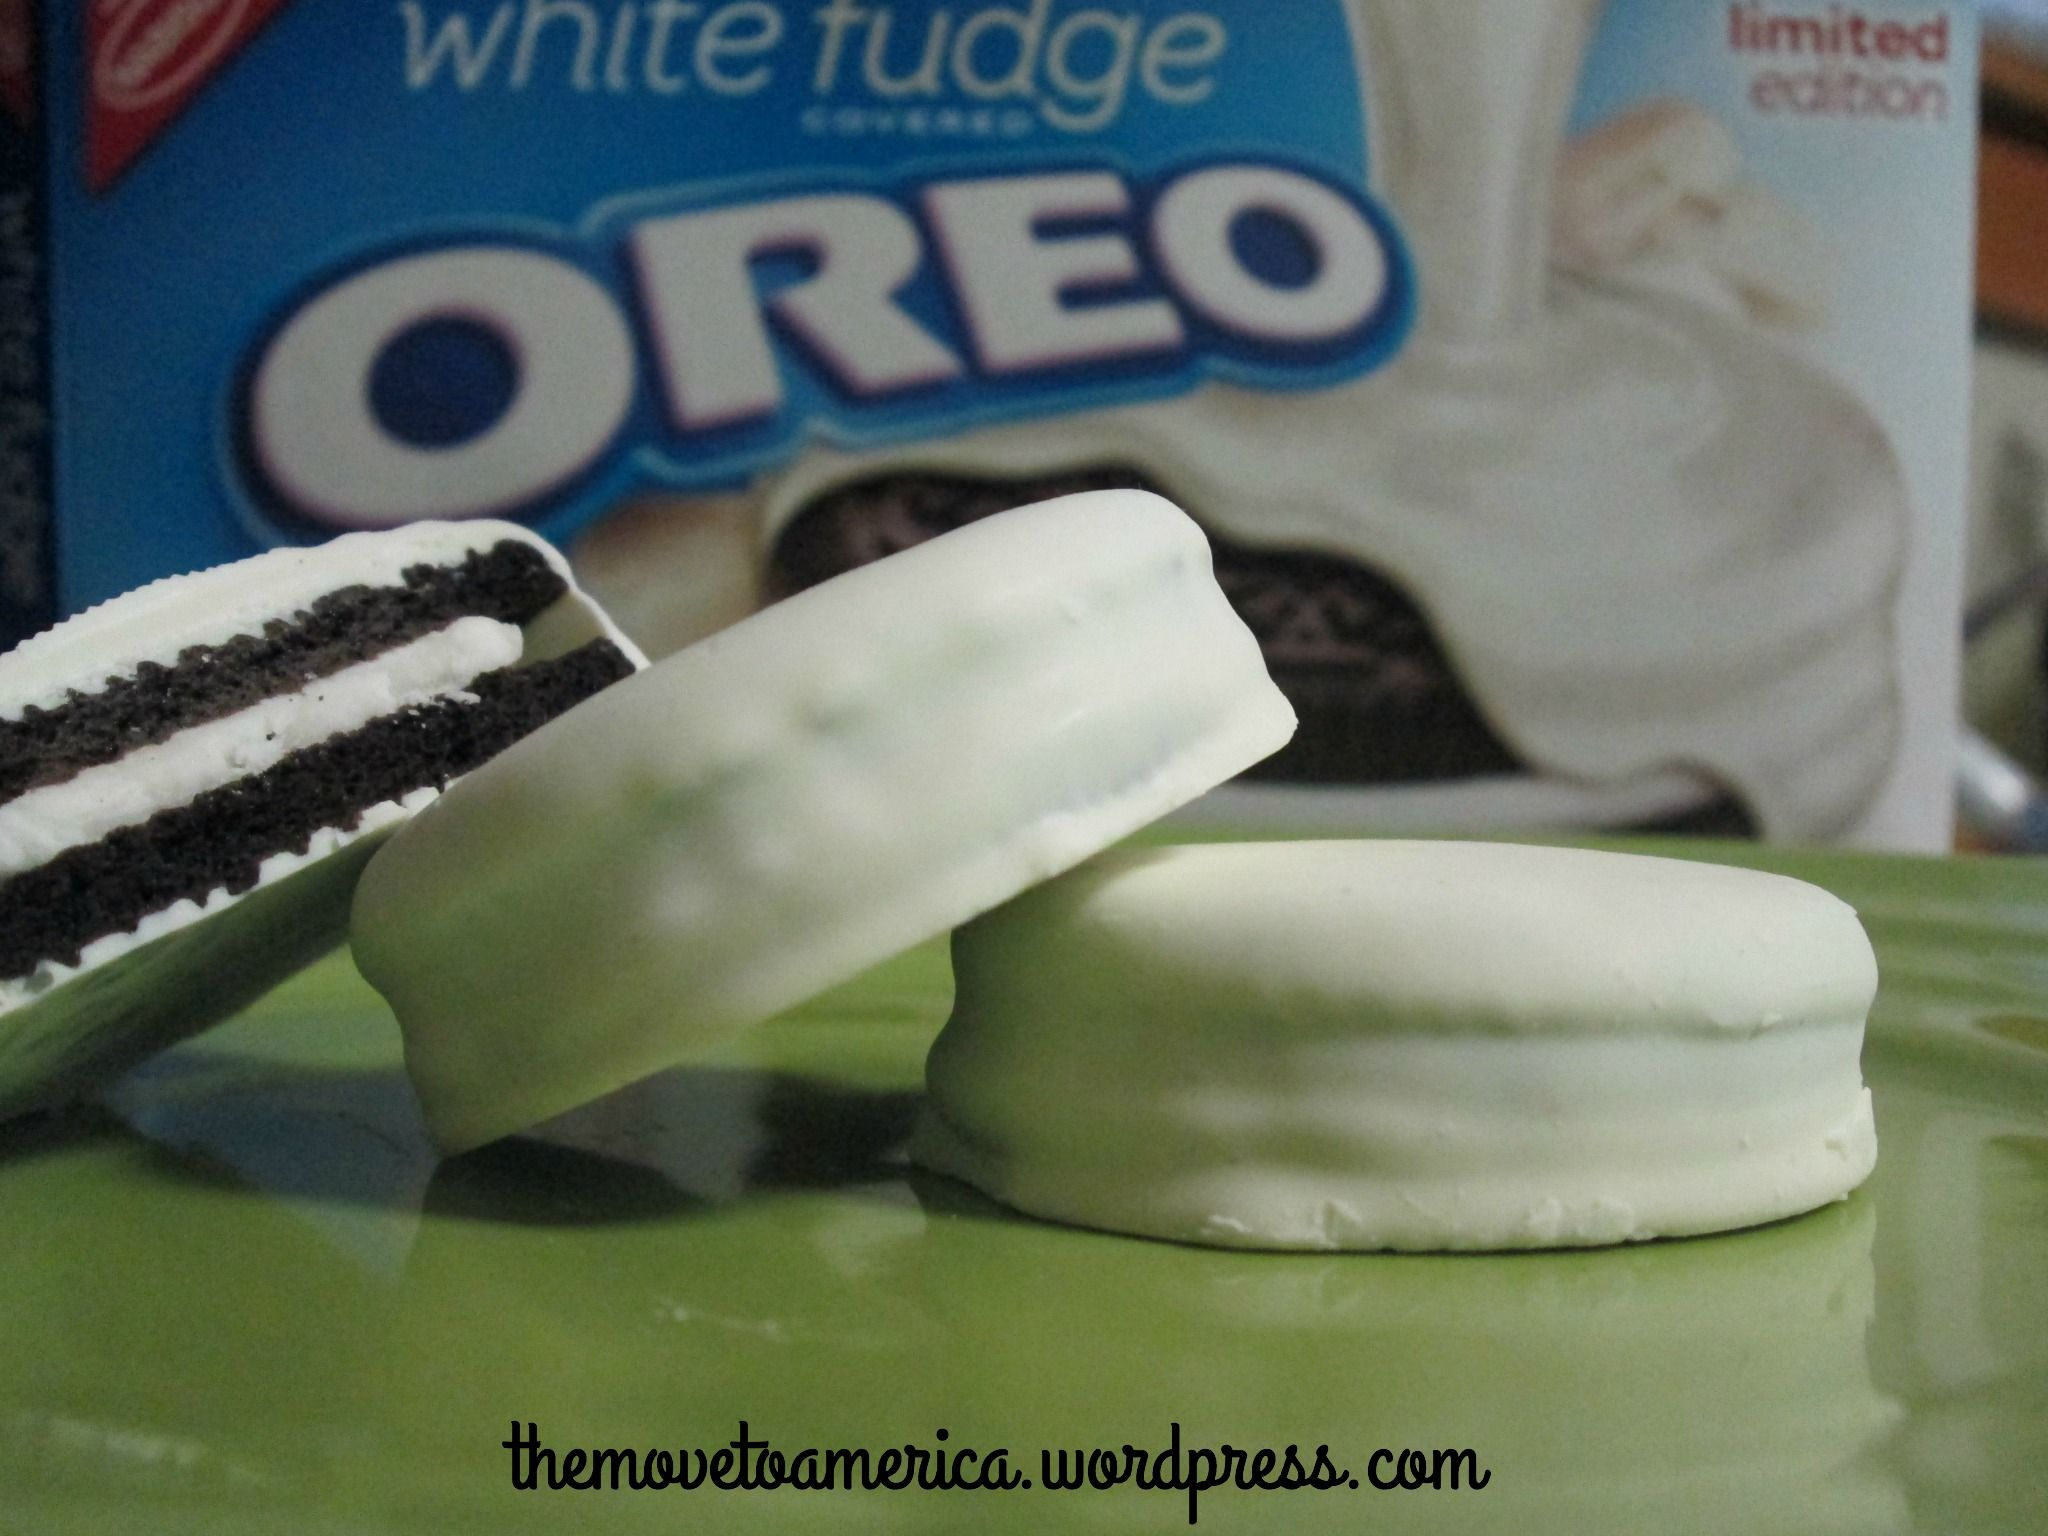 372 best Oreo flavors images on Pinterest | Oreo flavors, Oreo ...